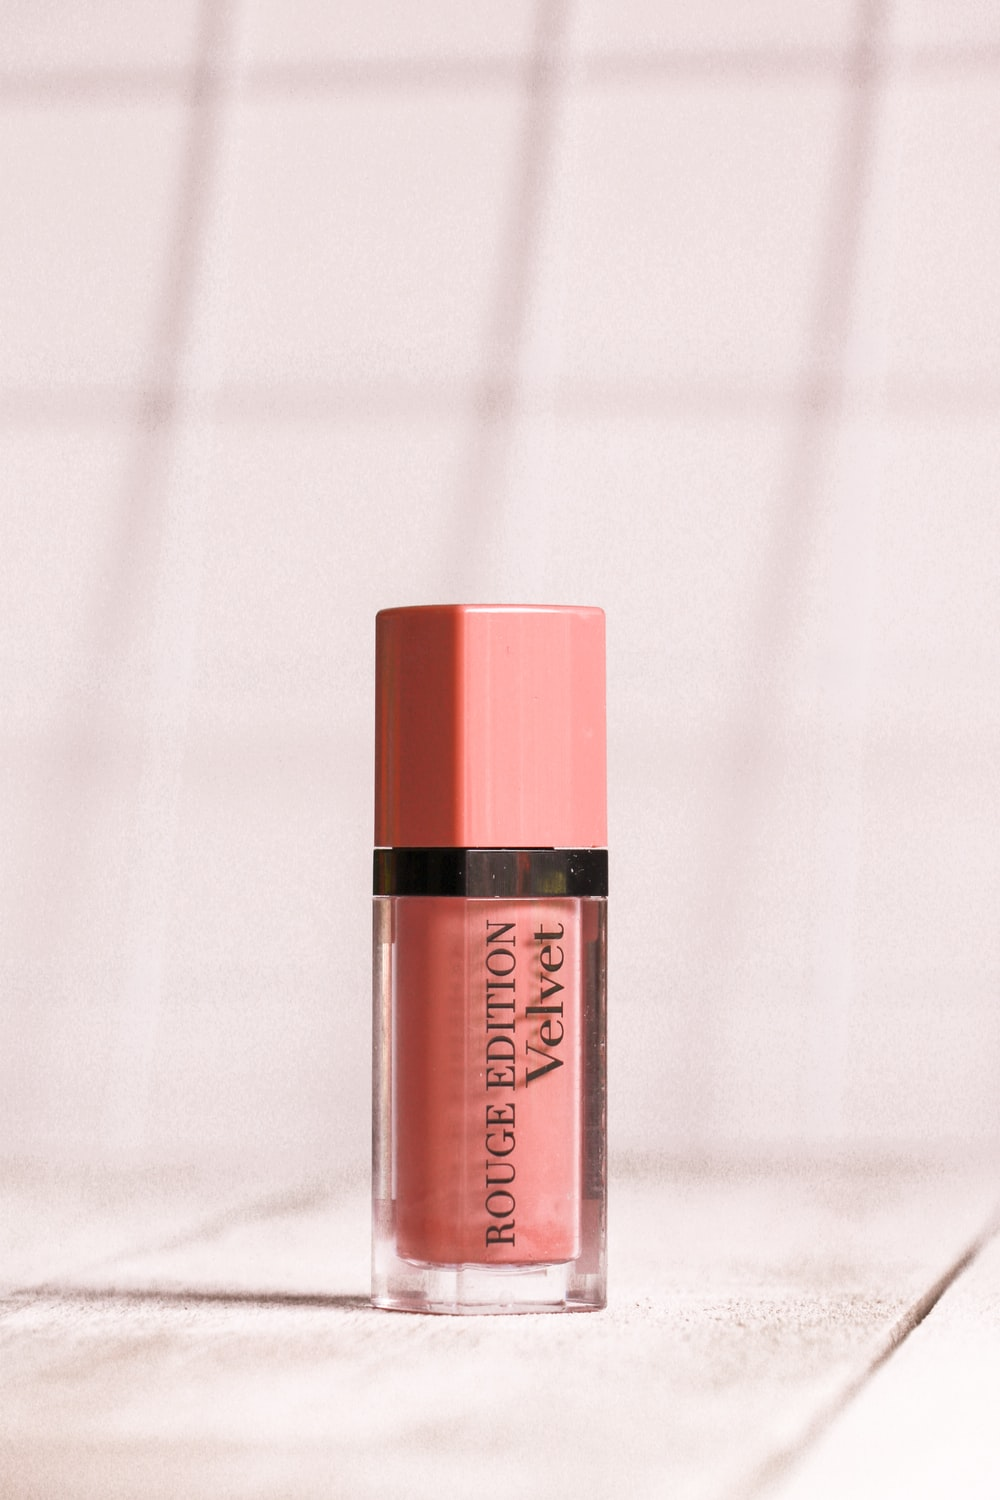 pink Rouge Edition lipstick on white surface